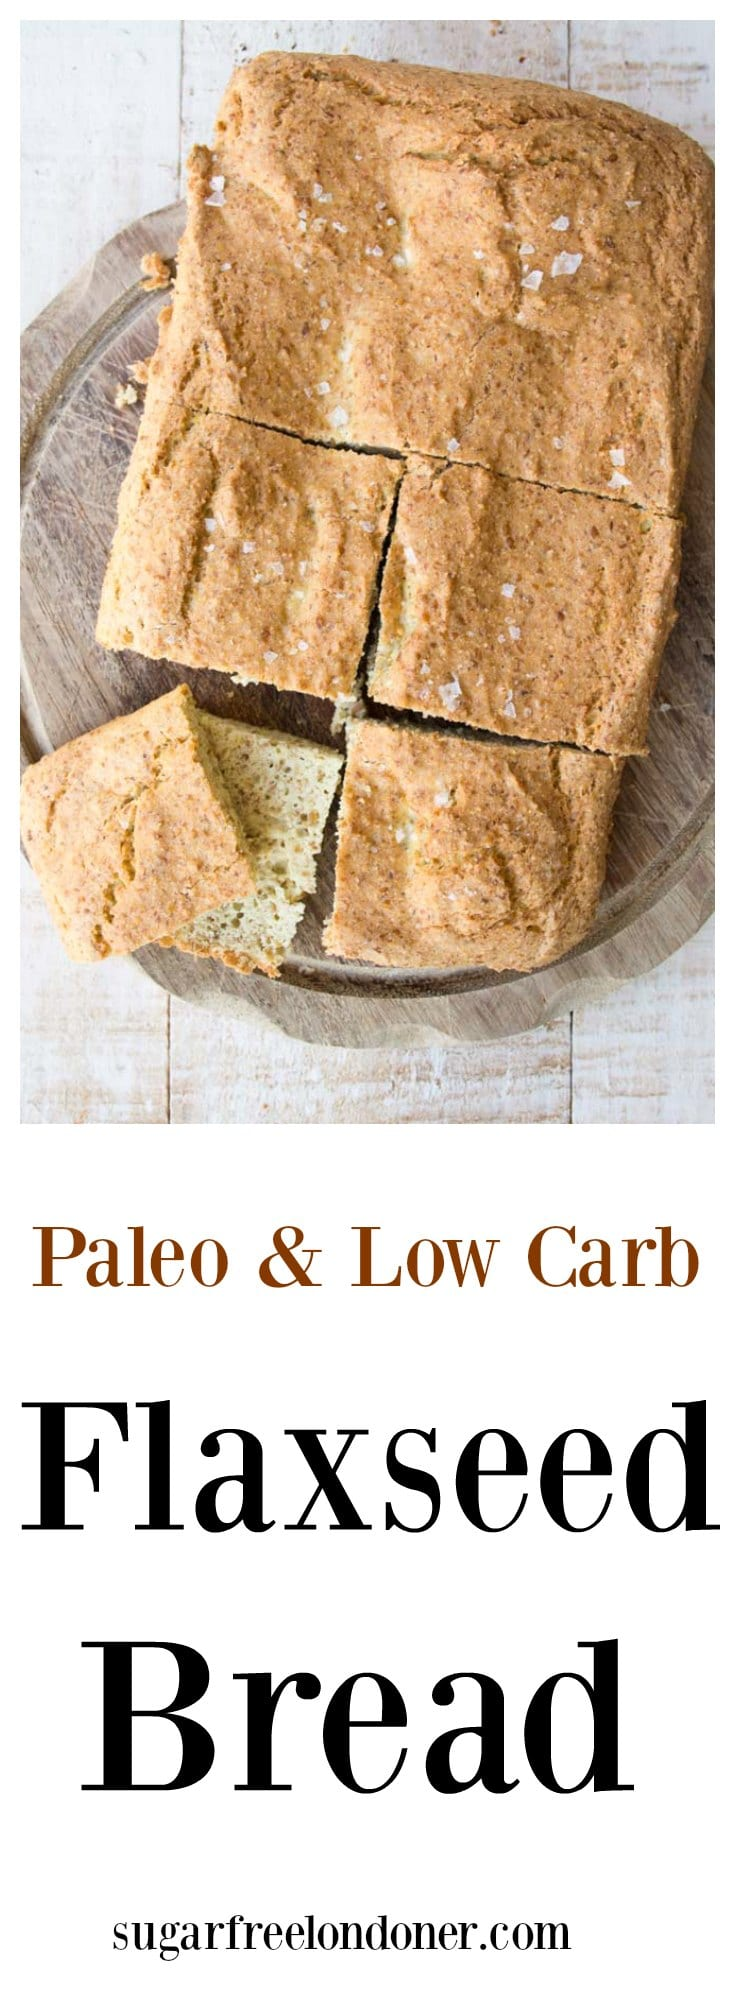 A soft, pillowy flaxseed bread that can be baked as a loaf, Focaccia-style or even as muffins. This bread uses coconut flour as a base and is delicious toasted. Great for low carb, gluten free and Paleo diets.